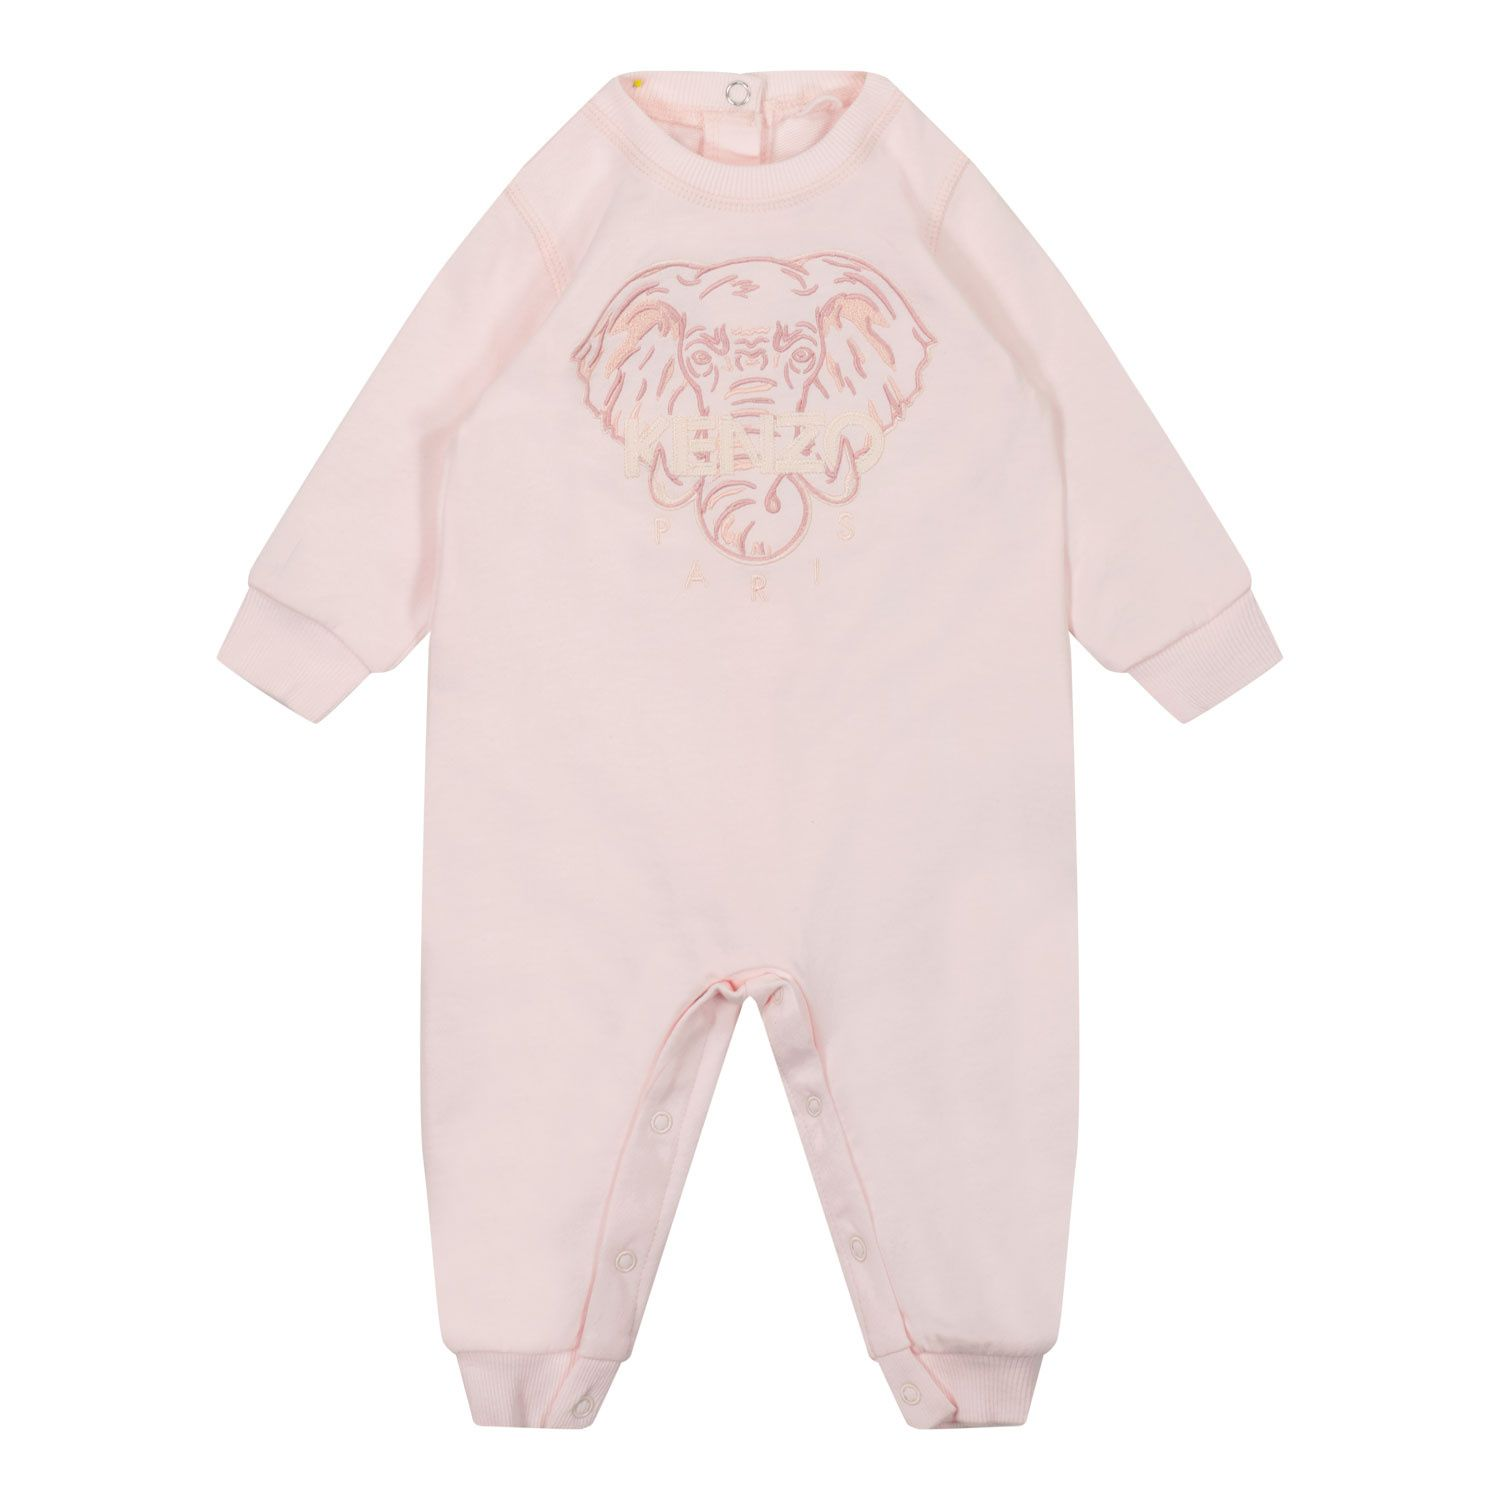 Picture of Kenzo K94016 baby playsuit light pink